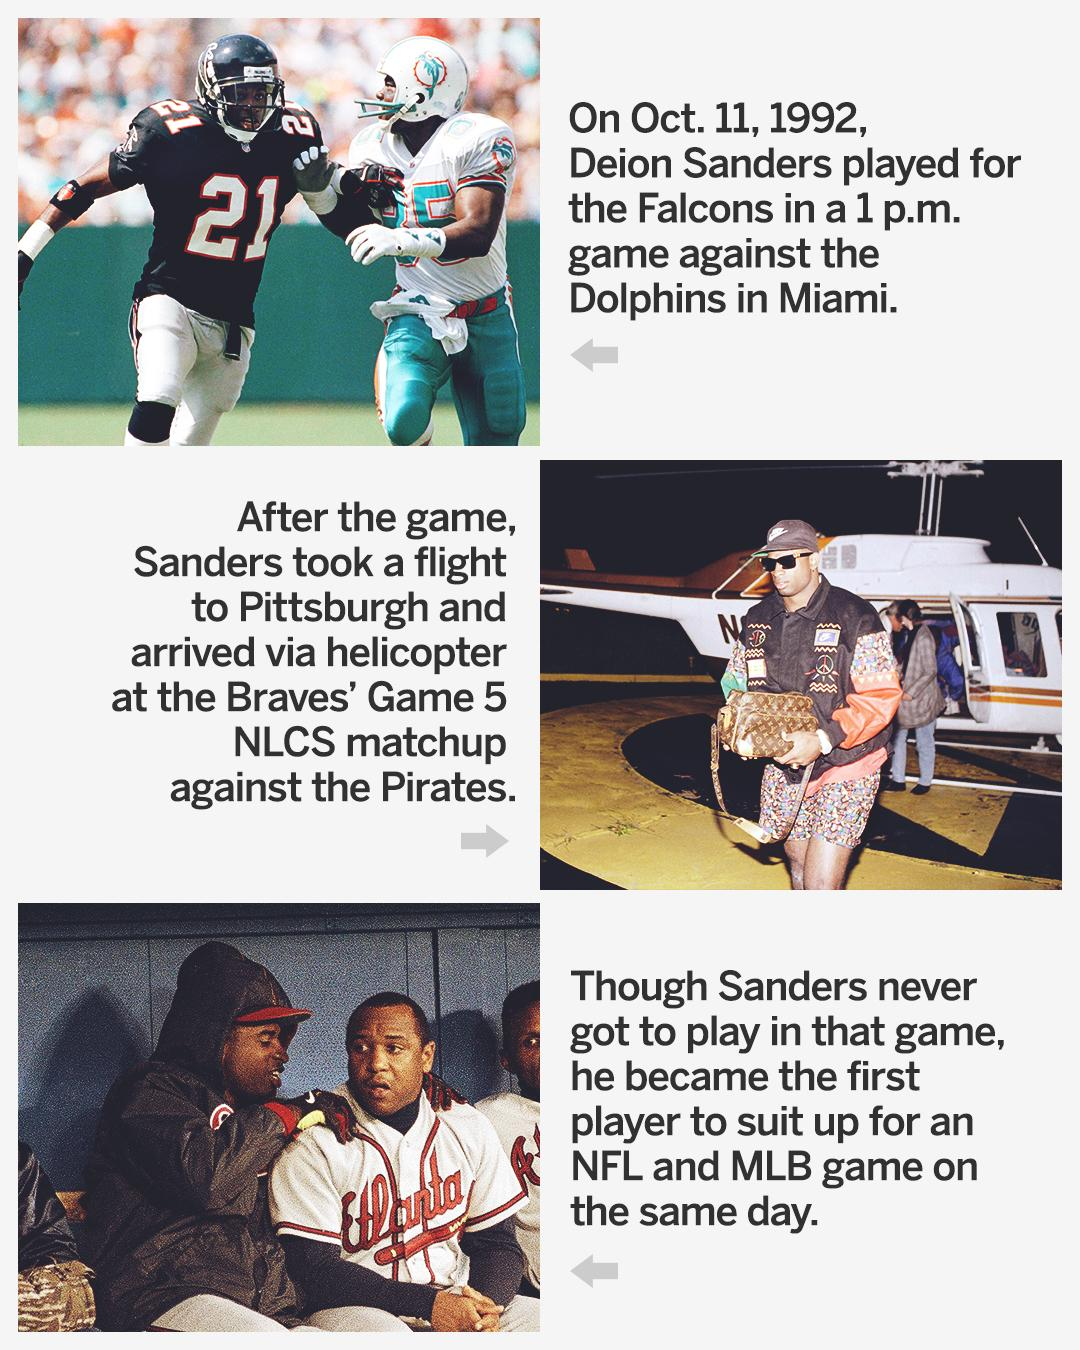 On This Date: Deion Sanders repped Atlanta ... twice. https://t.co/SjMeuoY7Lm